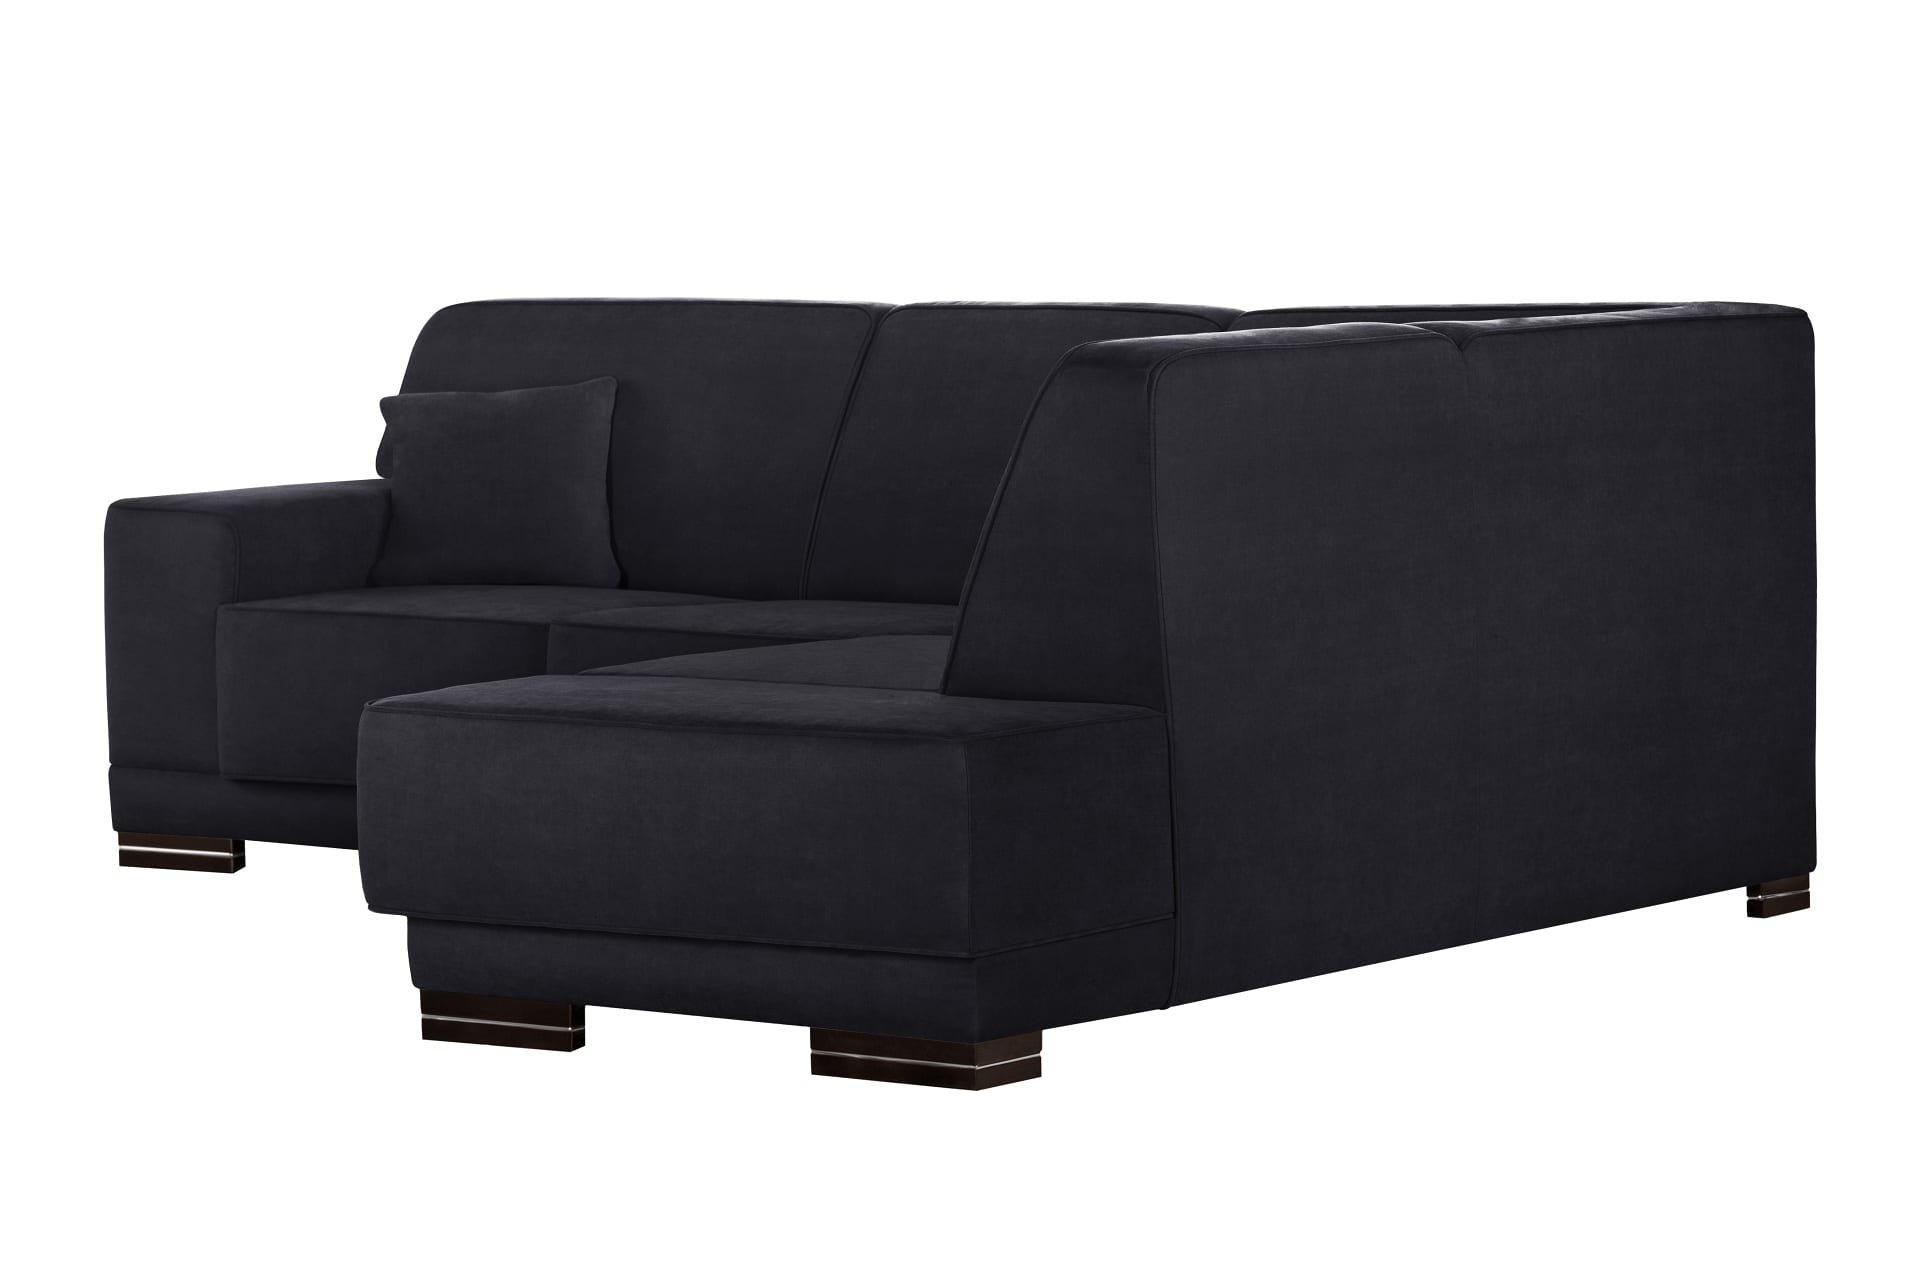 canap confortable pour le dos wc66 montrealeast. Black Bedroom Furniture Sets. Home Design Ideas